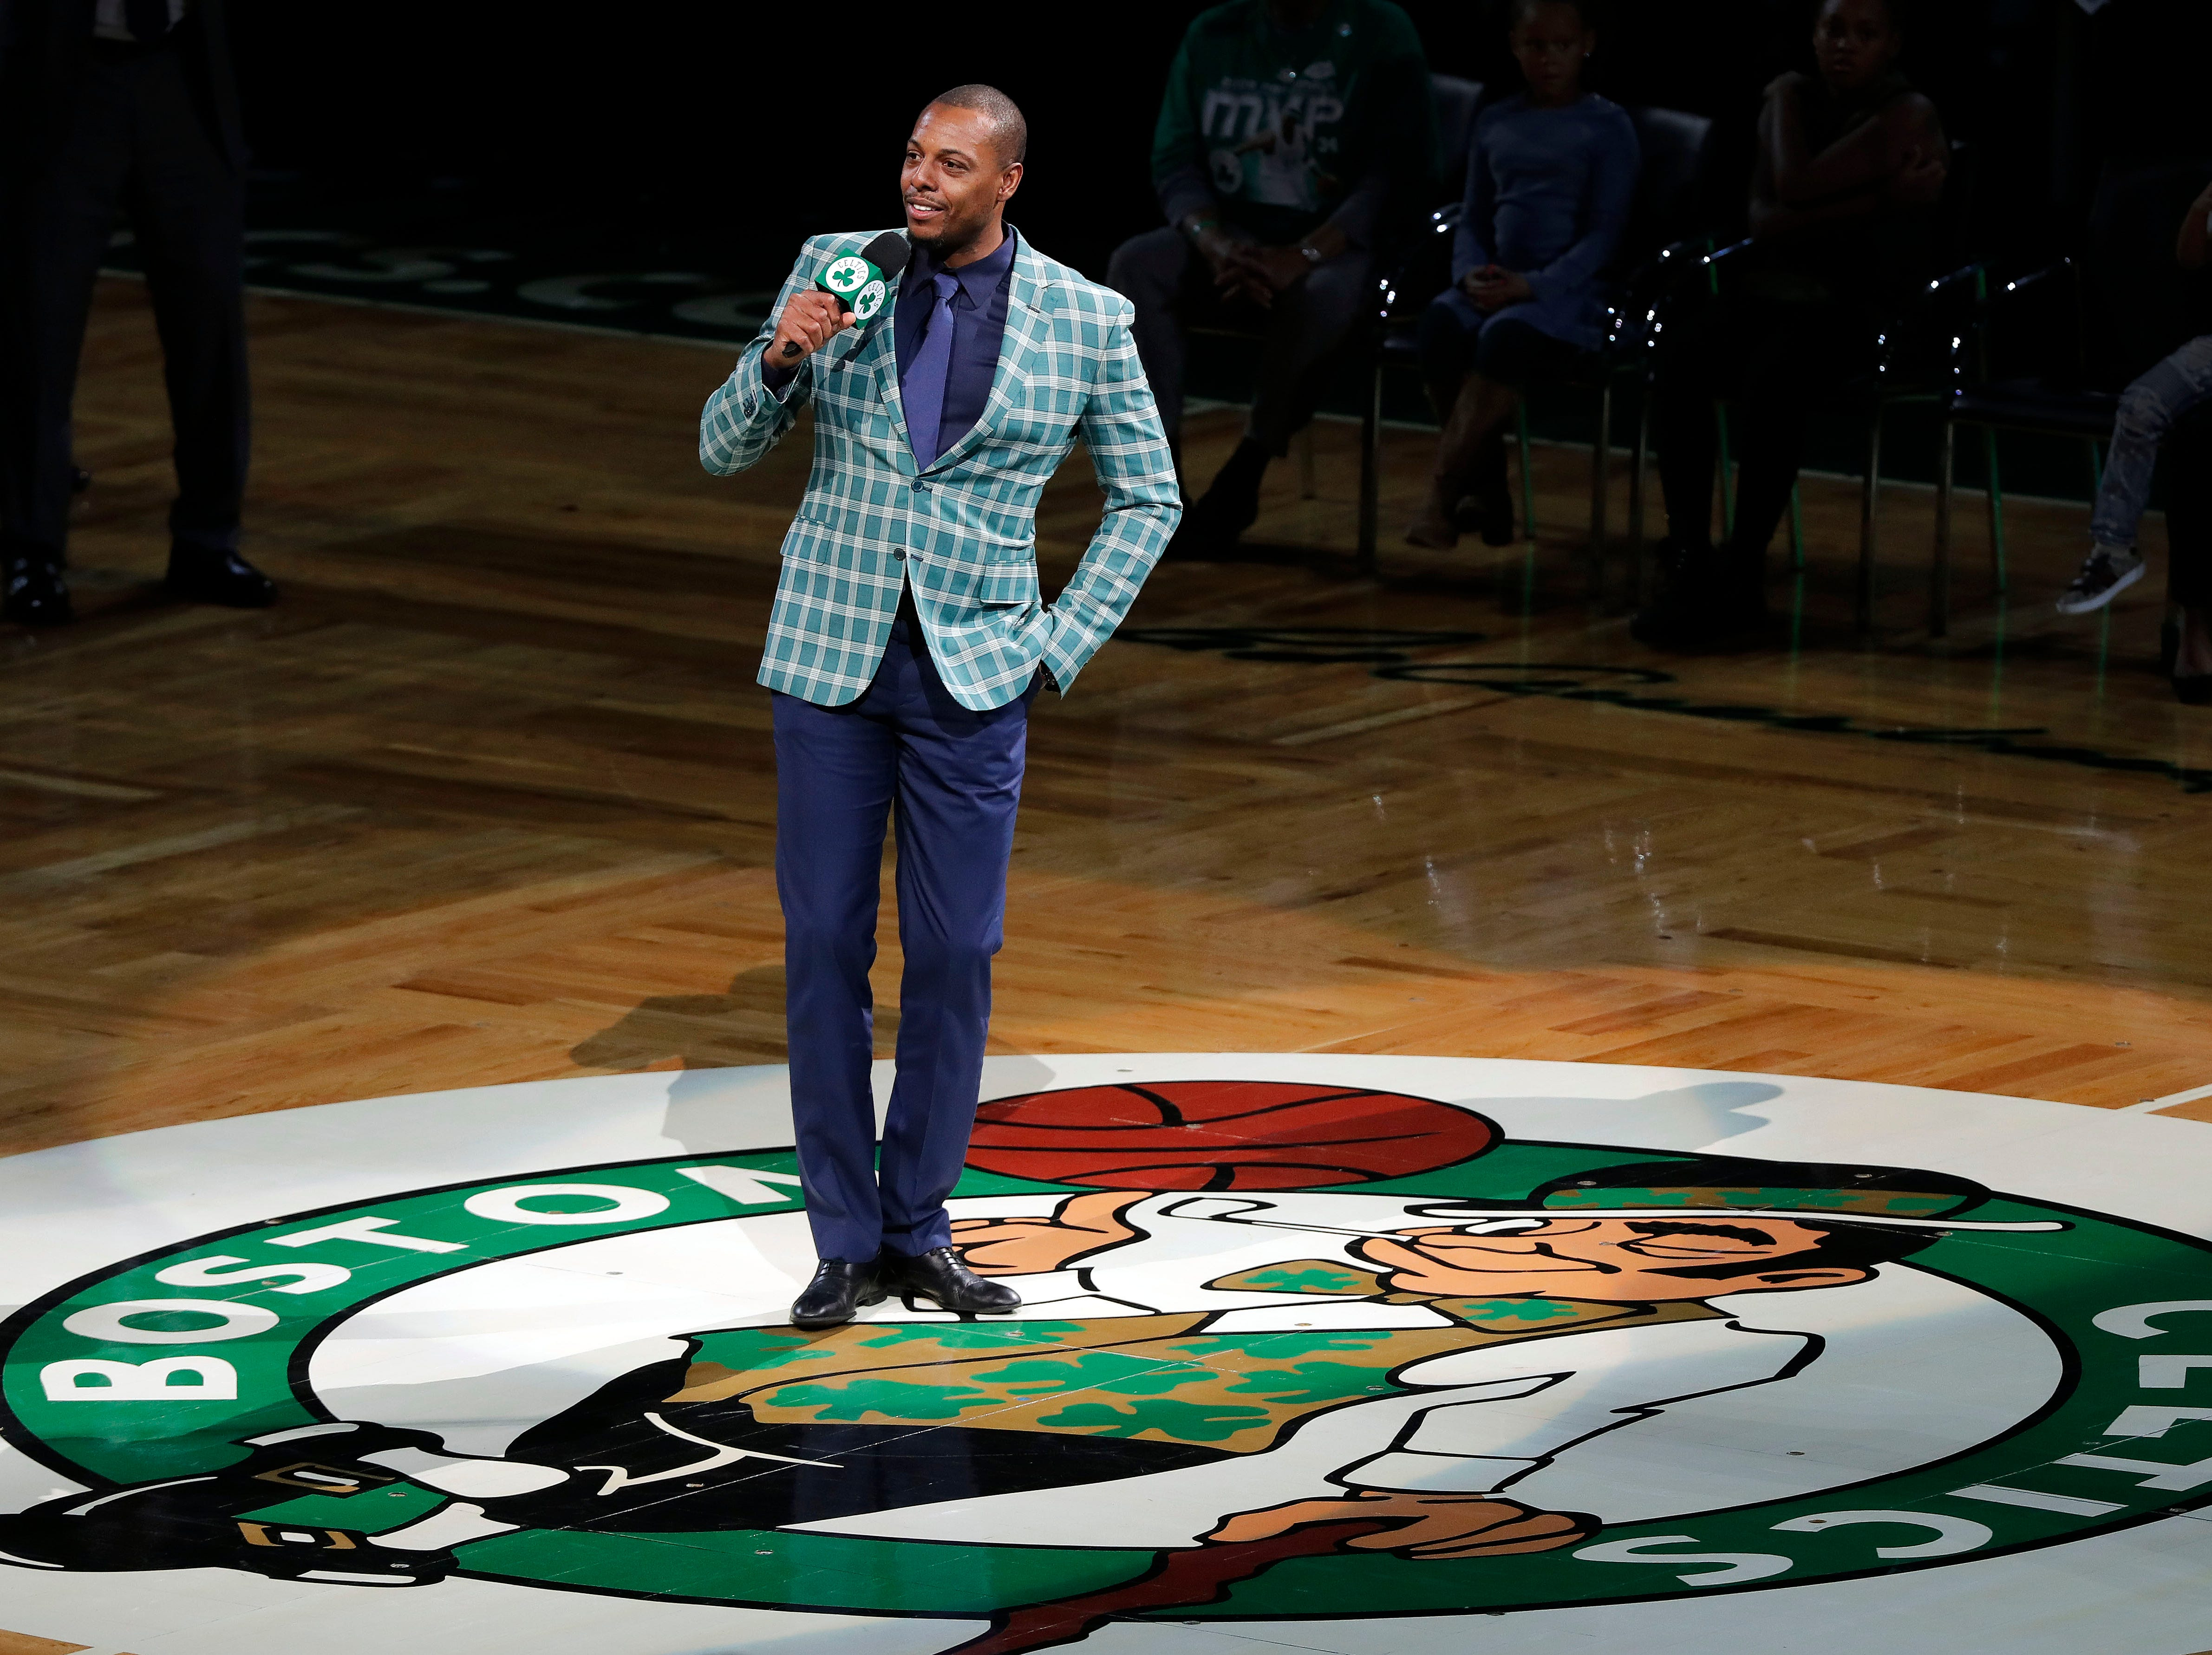 """Feb. 11: Former Boston Celtics star Paul Pierce speaks to the crowd during the ceremony to retire his number at TD Garden. Pierce is featured in a new documentary called """"Inglewood Morning Sessions"""" about an Inglewood police lieutenant who mentored youth through his early-morning basketball camps. Pierce was a beneficiary of the camps."""